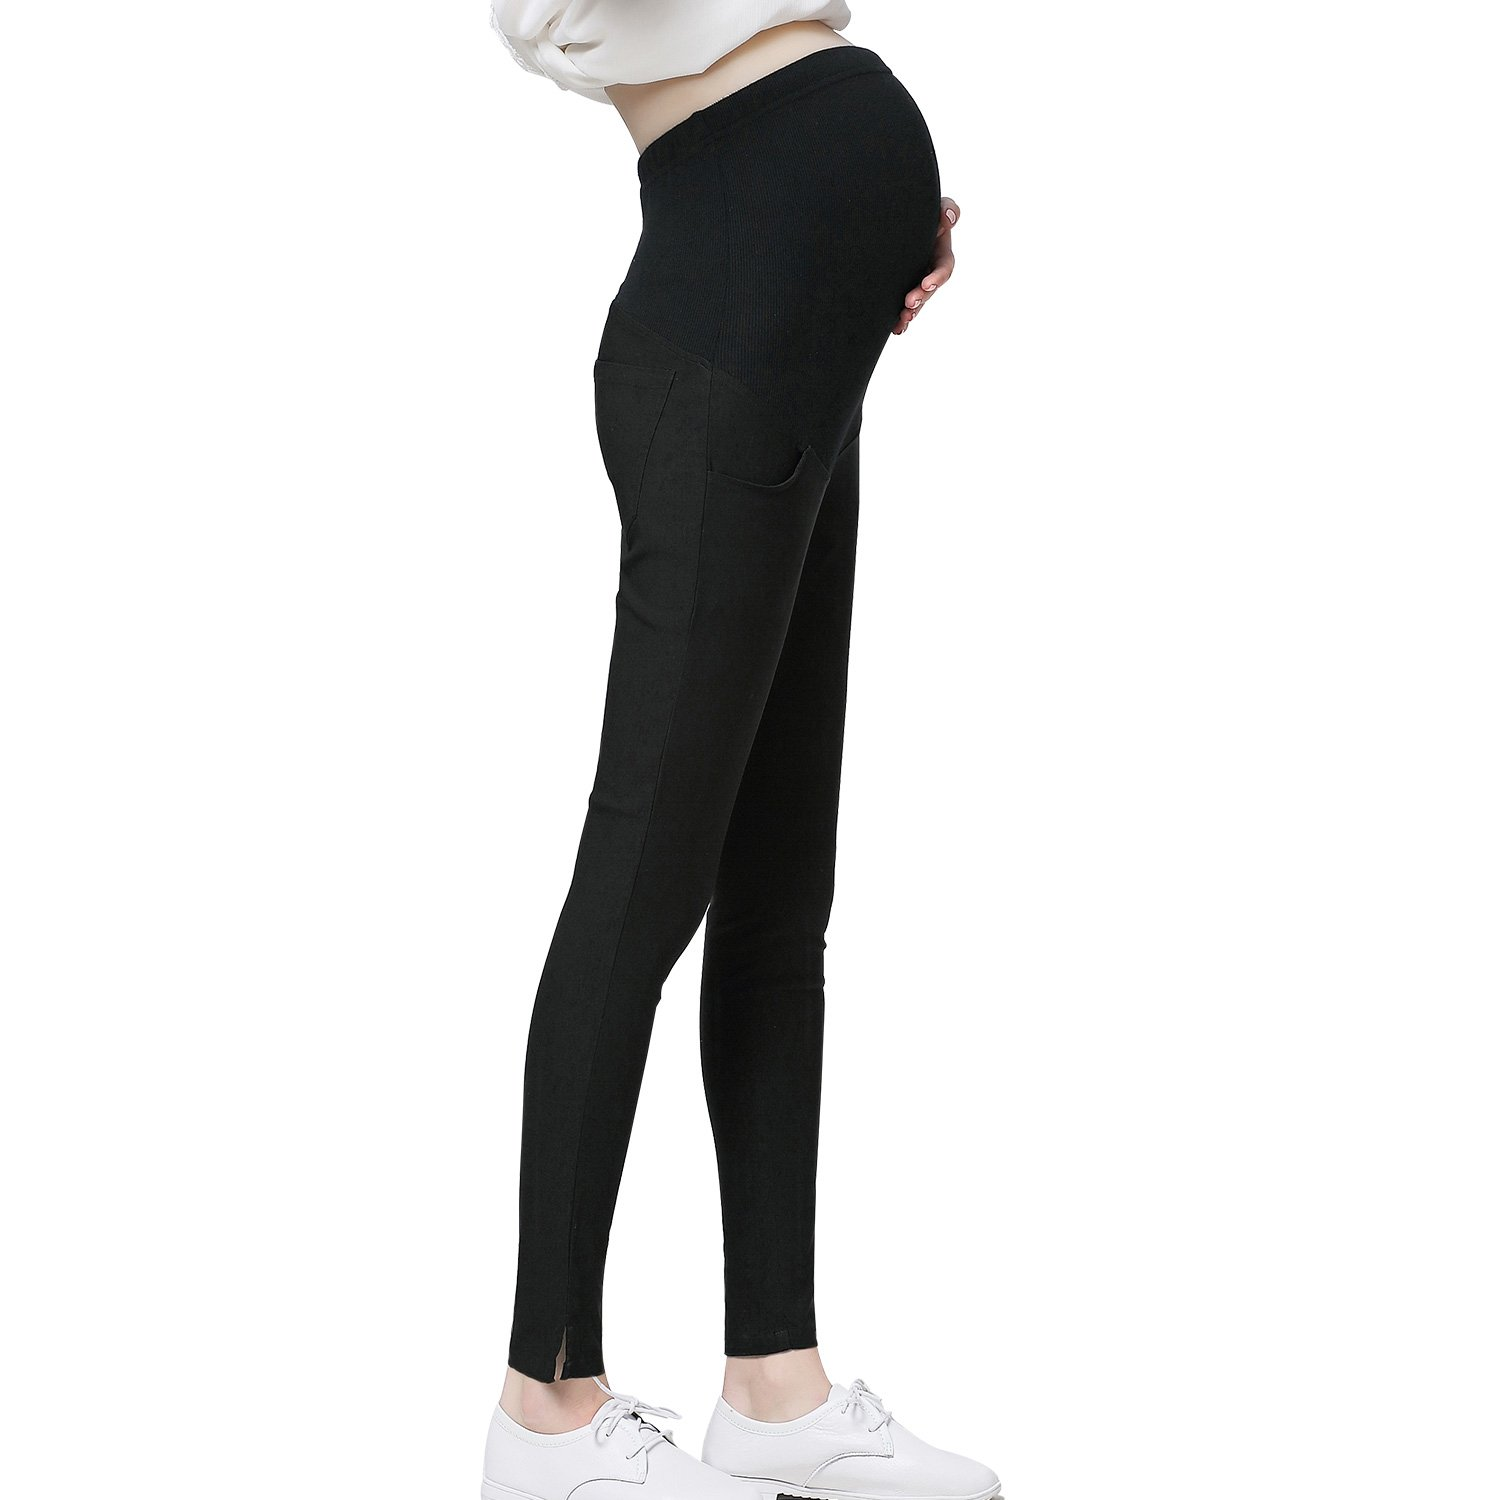 JOYNCLEON Pregnant Women Work Pants Stretchy Maternity Skinny Ankle Trousers Slim for Women (Label XXXL = US 16-18 fit for Hip 40.2'', Black)